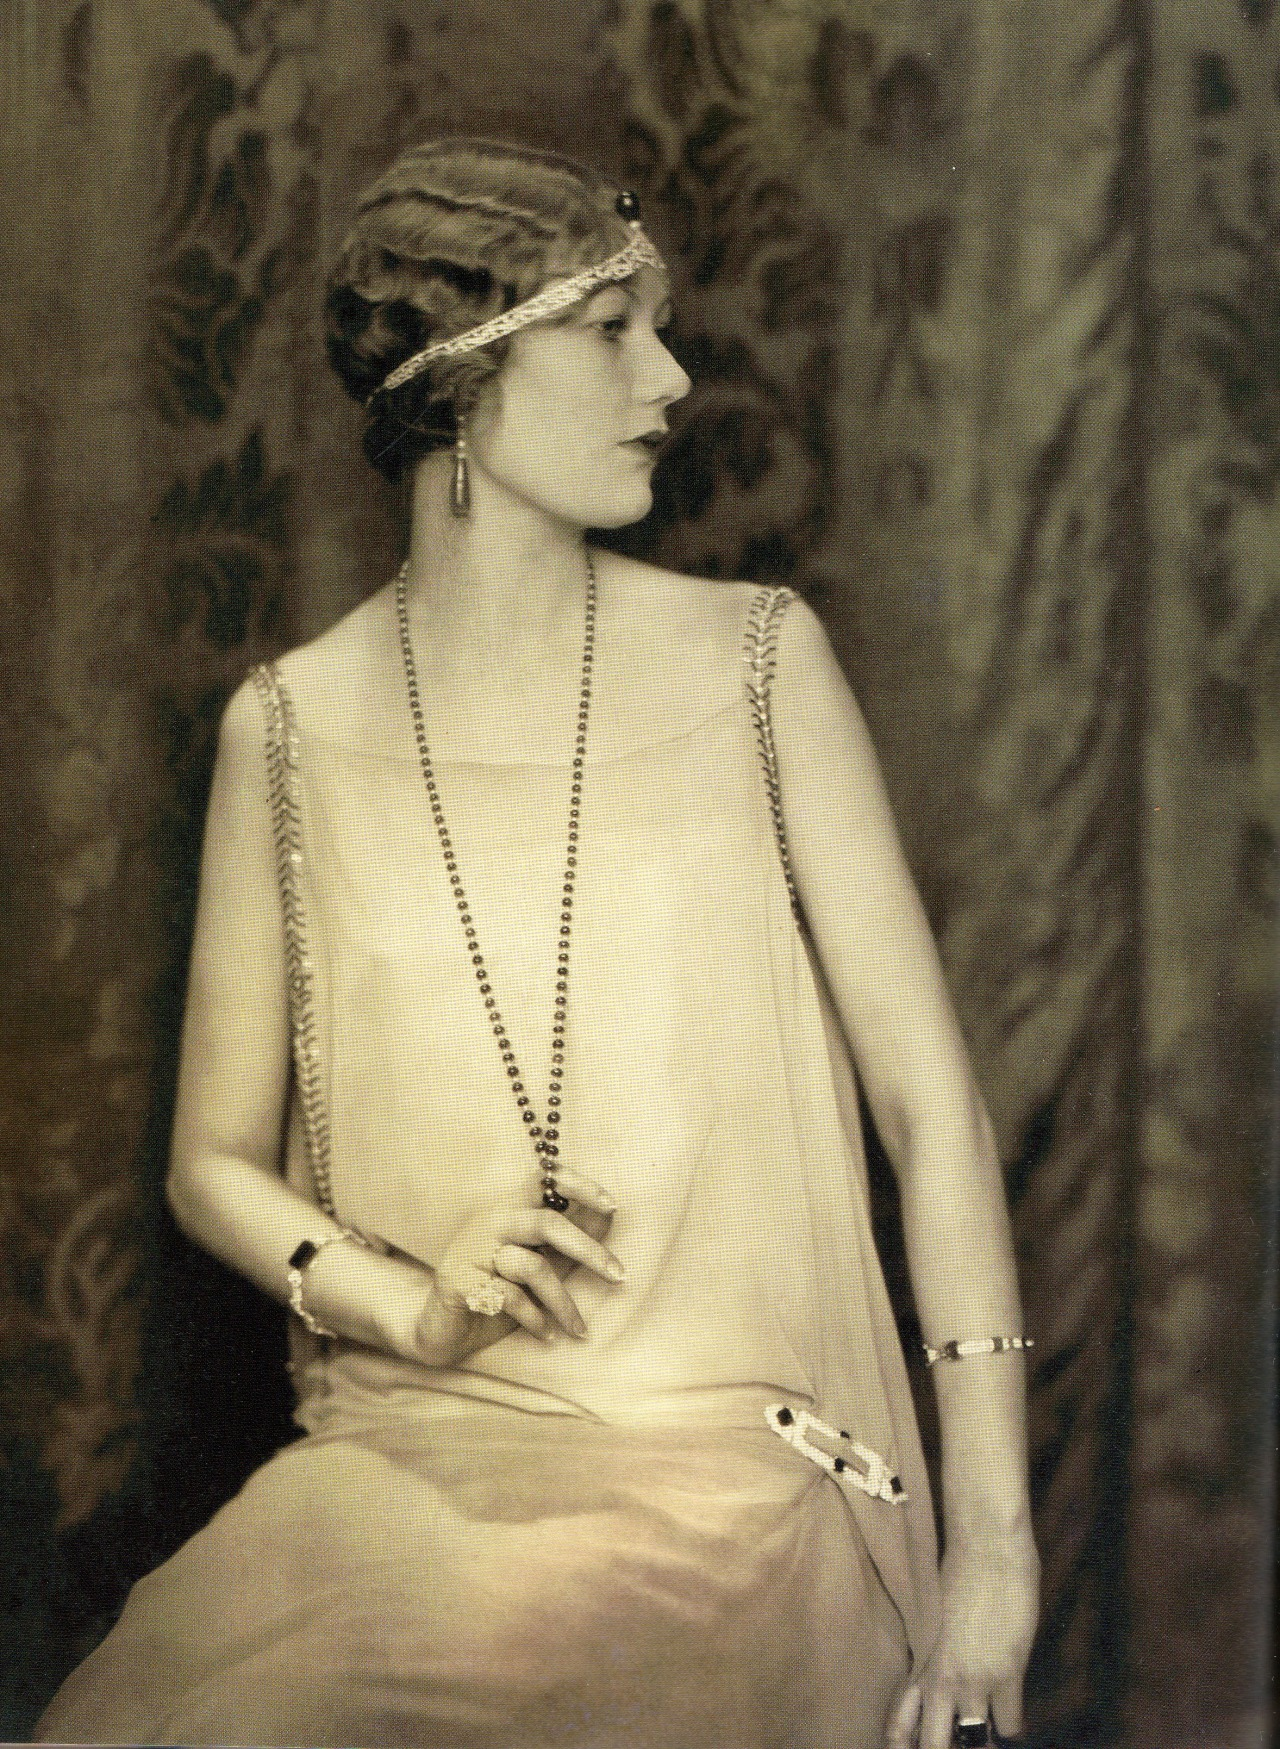 An introspective flapper in 1924 wearing a matching necklace and earrings of emeralds and pearls by Cartier. The dress pin and headband were also by Cartier. What is fascinating about vintage pins is what they were used for, not just to grace lapels but to accent belts, shoulders, sleeves and here, to highlight a graceful drape. Photo from Vintage Jewelry Design: Classics to Collect & Wear (Vintage Fashion Series) by Caroline Cox.